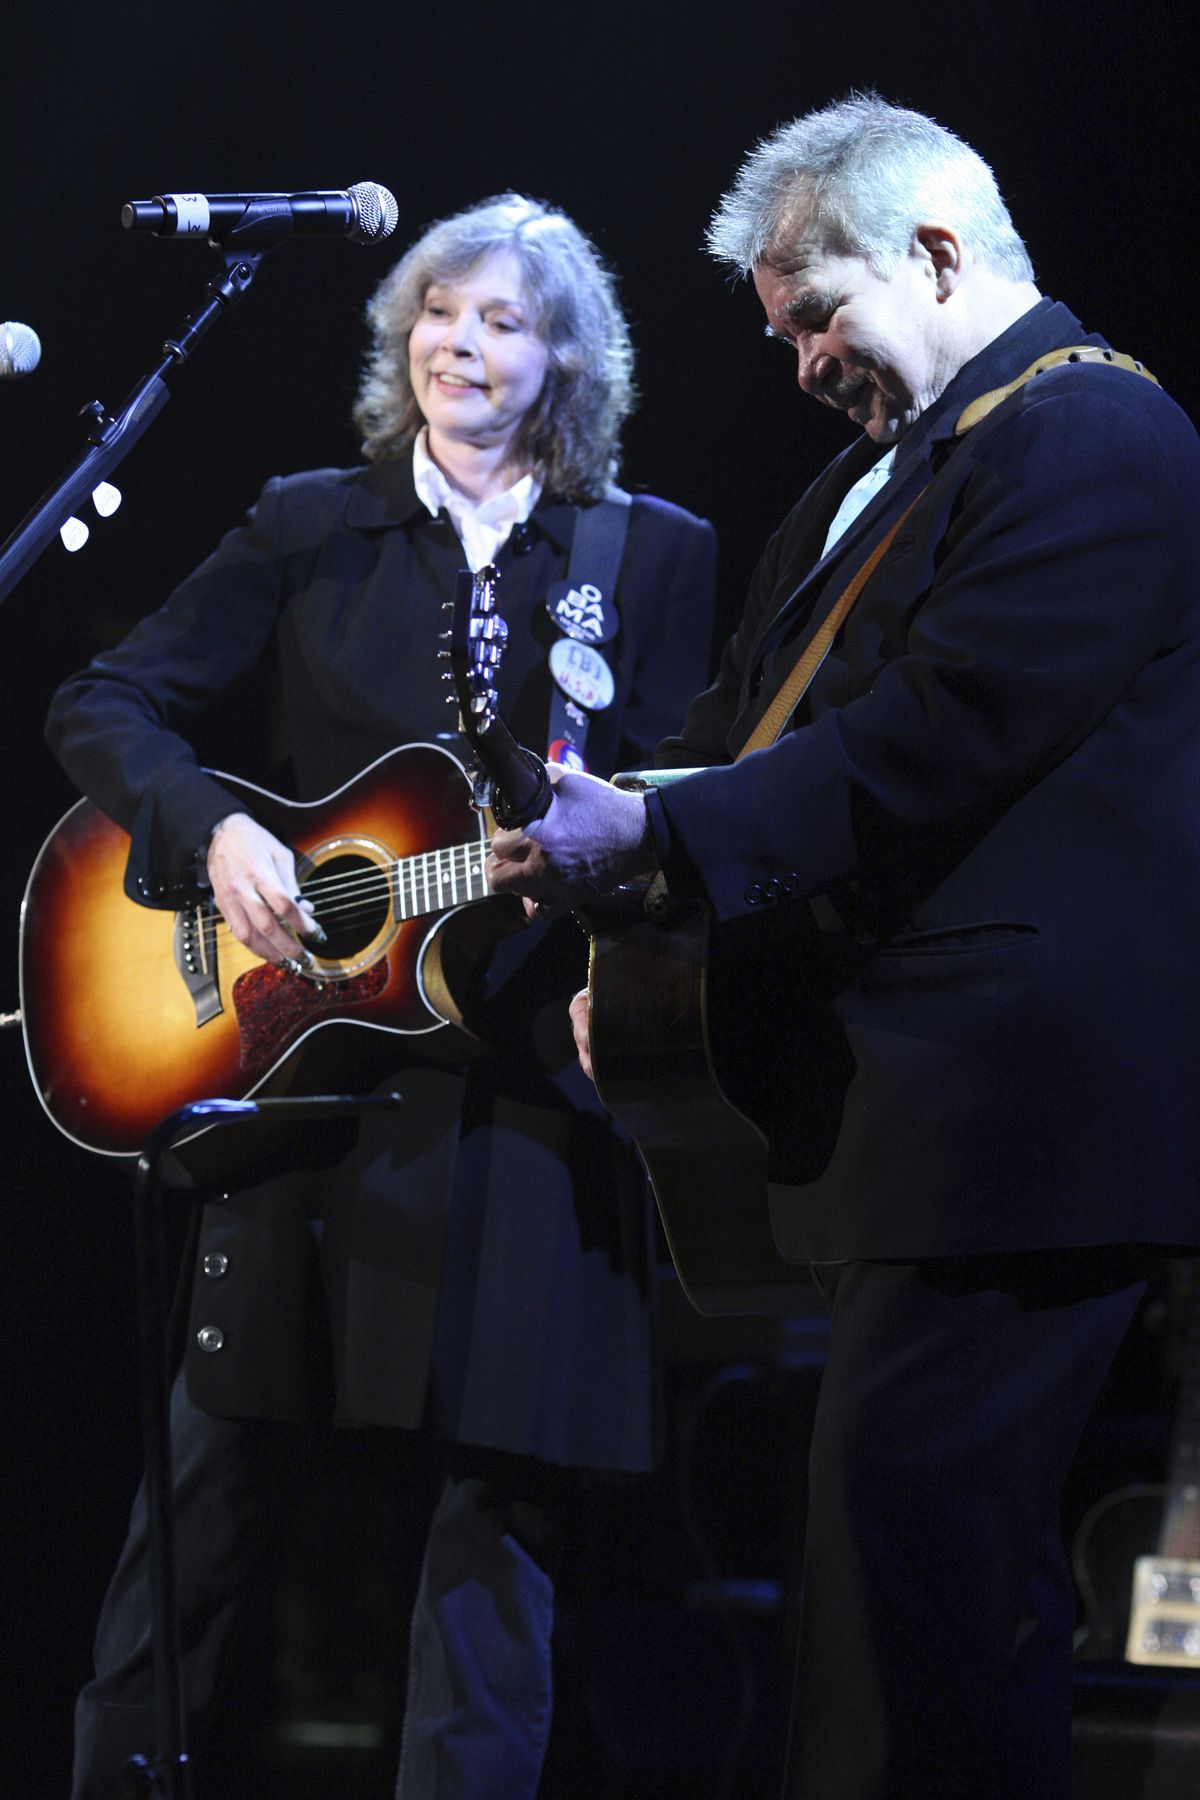 Nanci Griffith and John Prine perform at the Americana Music Association awards in Nashville, Tennessee, on Sept. 17, 2009.